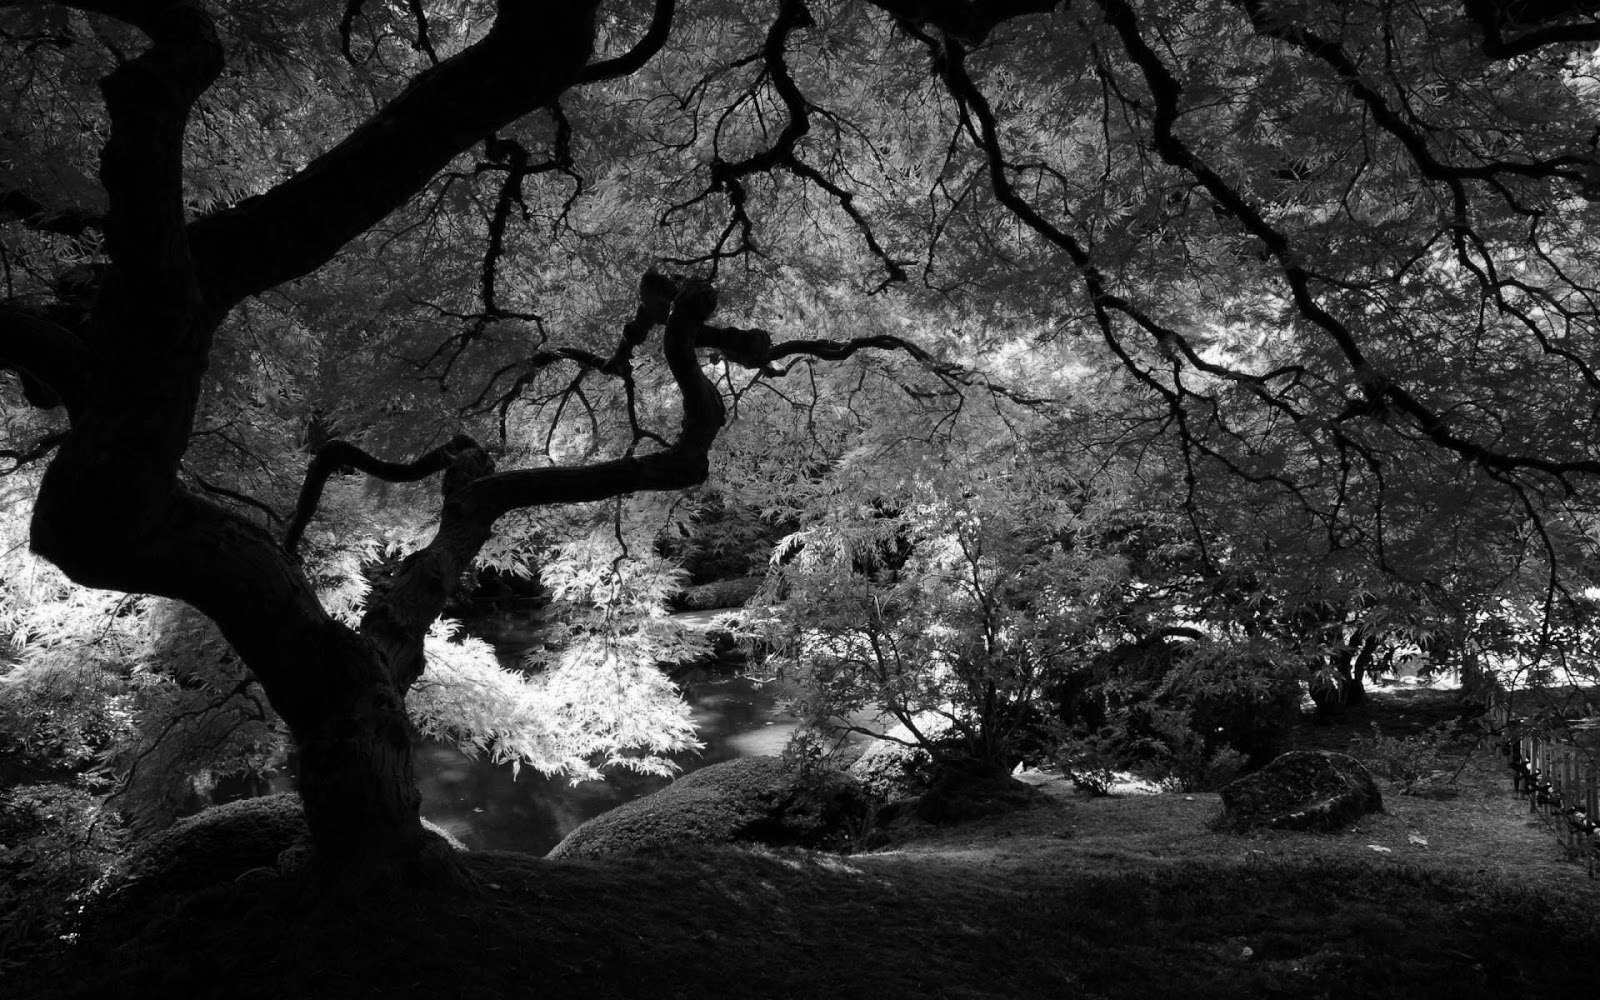 74 Black And White Nature Wallpaper On Wallpapersafari